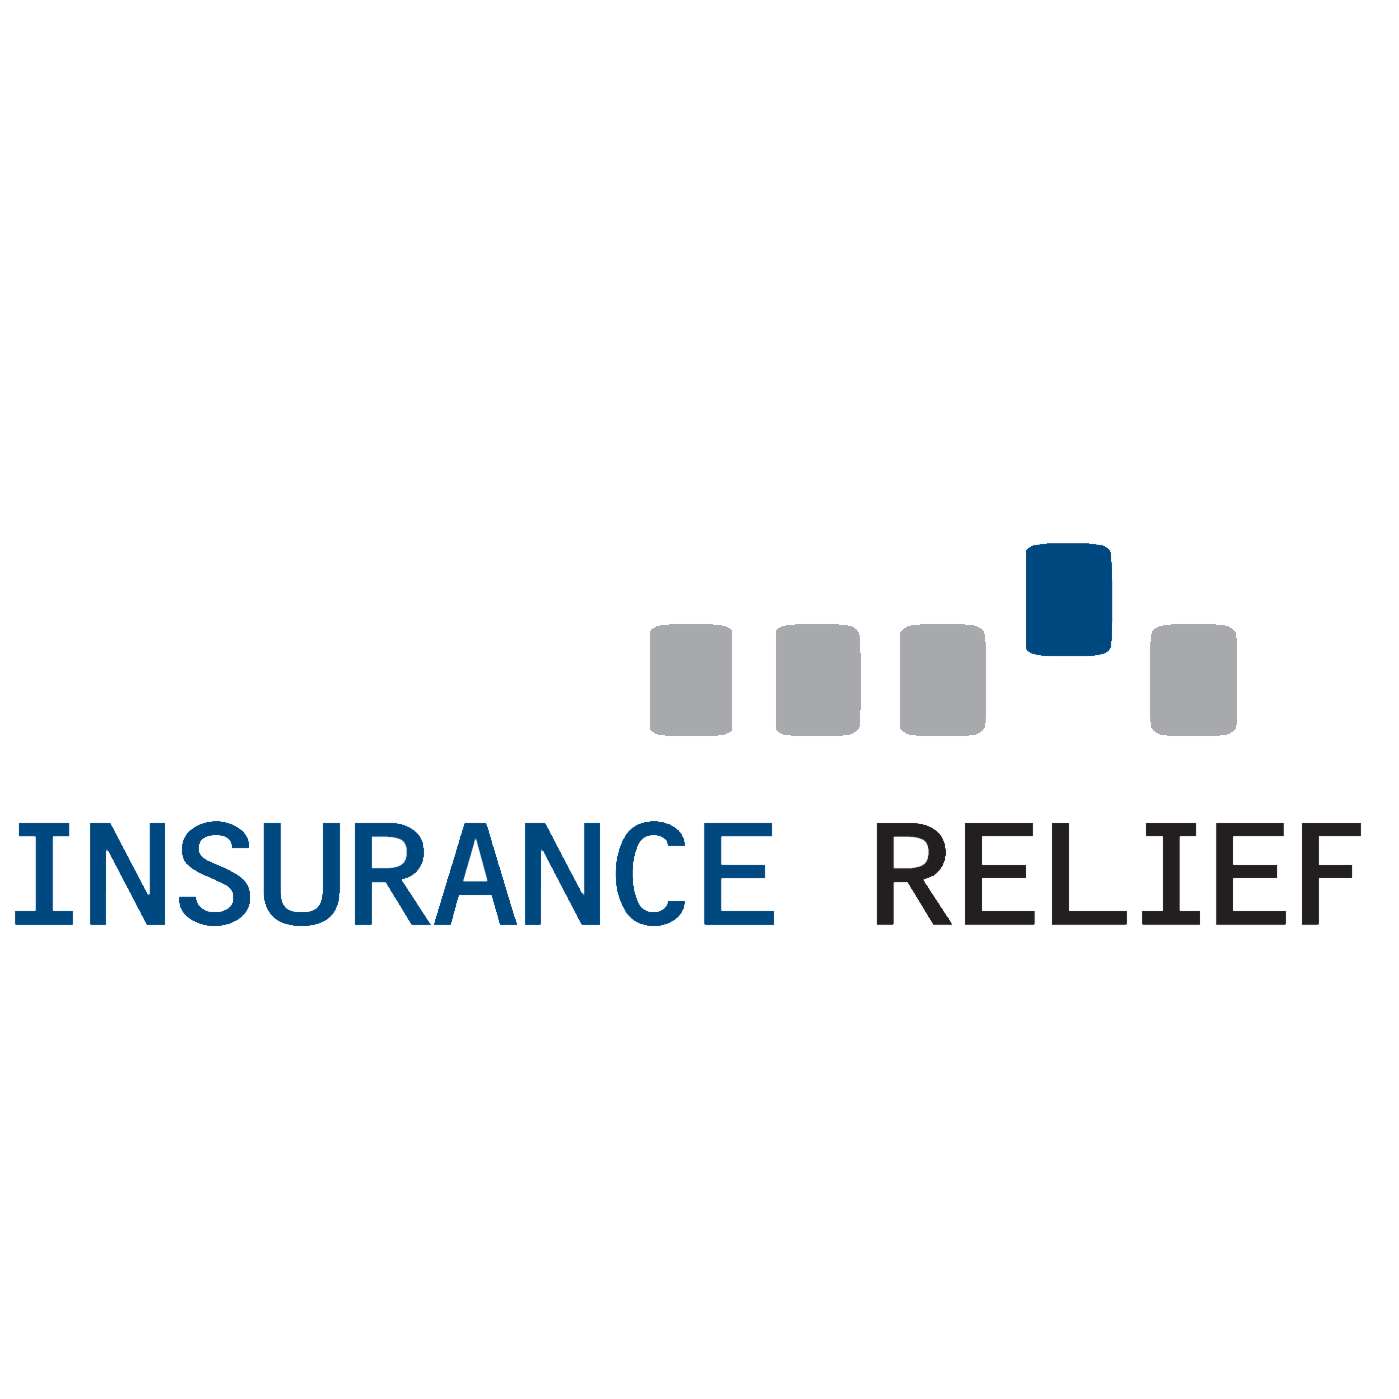 Insurance Relief